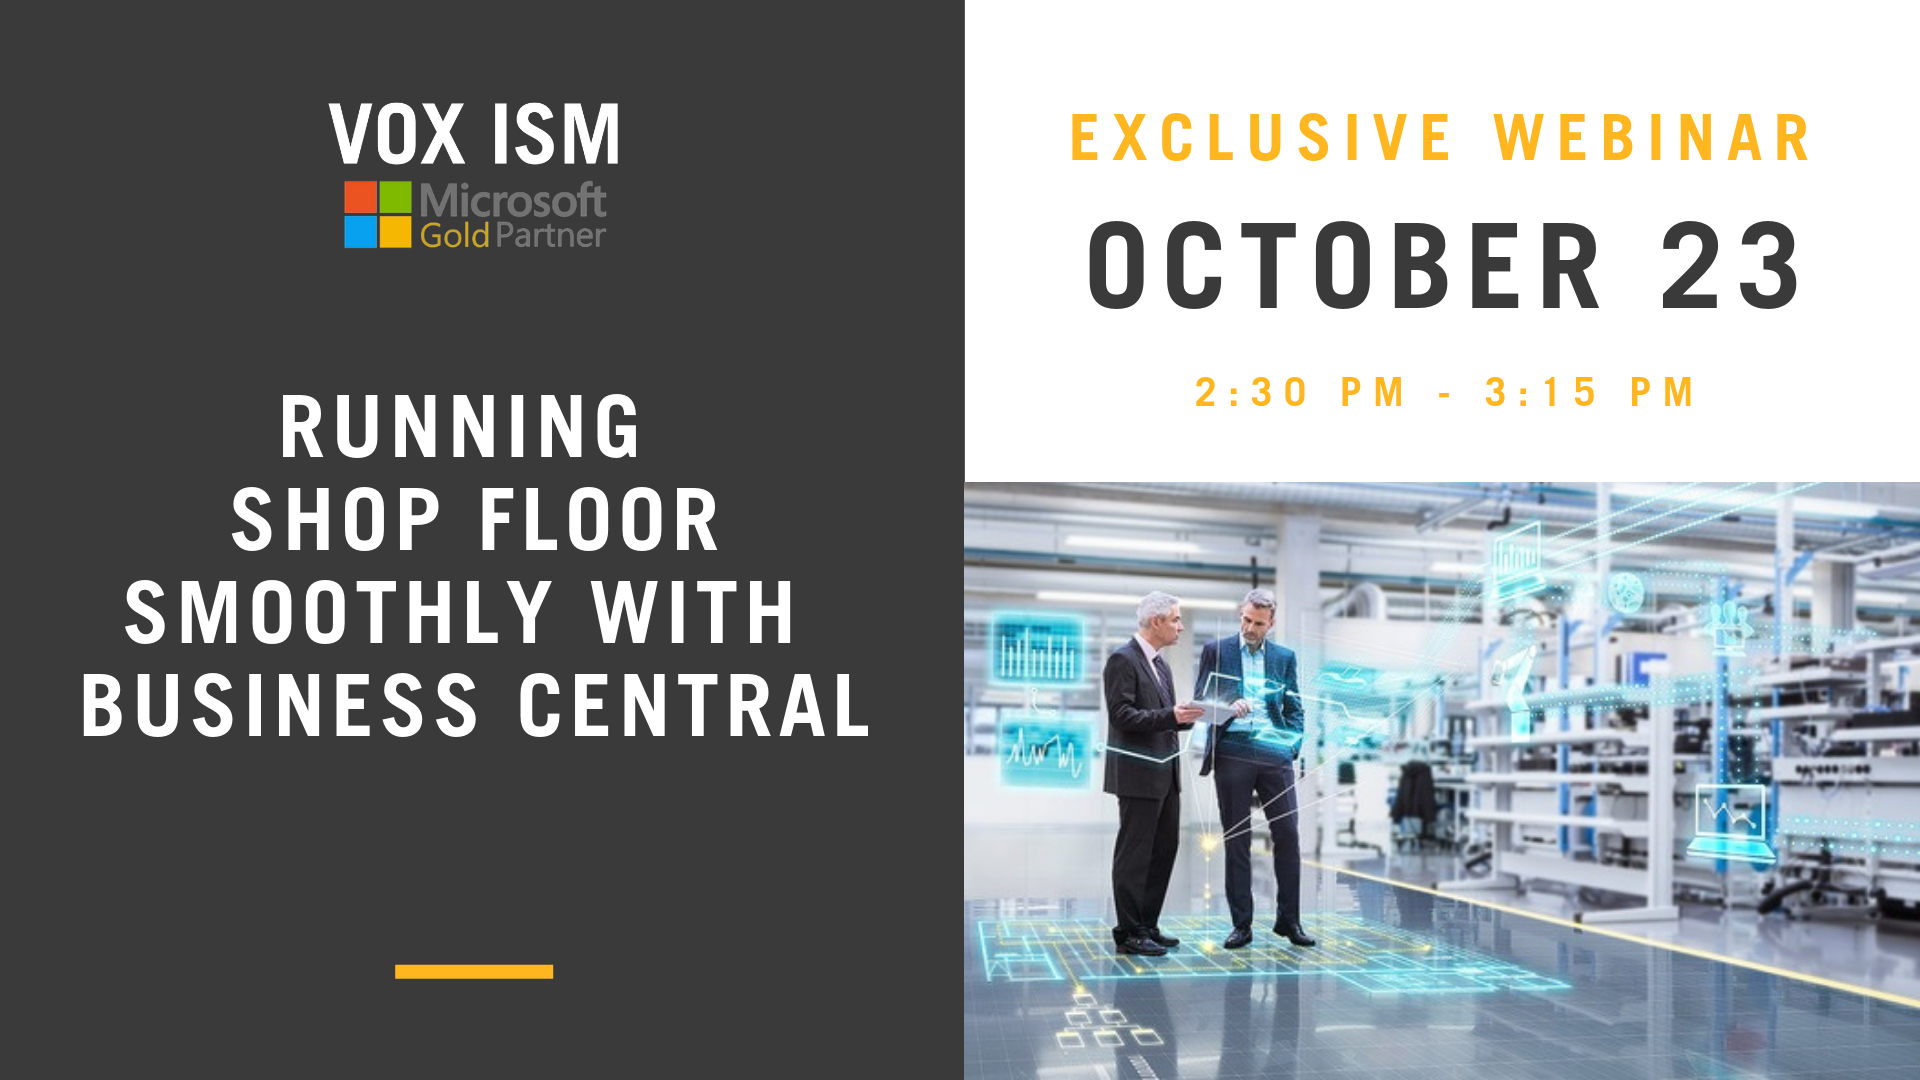 Running the Shop Floor Smoothly with Business Central - October 23 - Webinar - VOX ISM